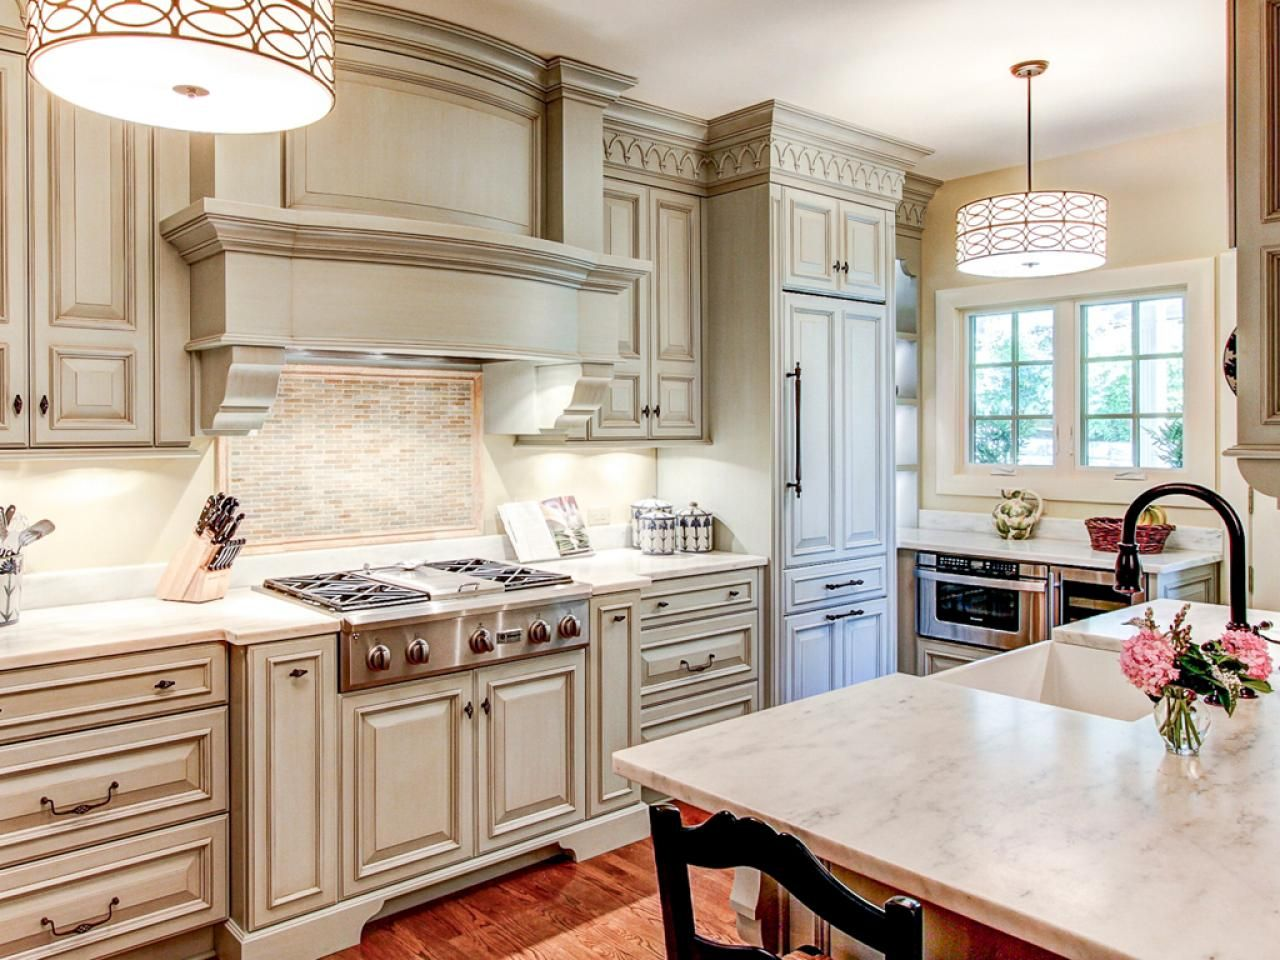 Craveworthy Kitchen Cabinets  Marble Countertops Raised Panel Adorable How To Paint Kitchen Cabinets White Inspiration